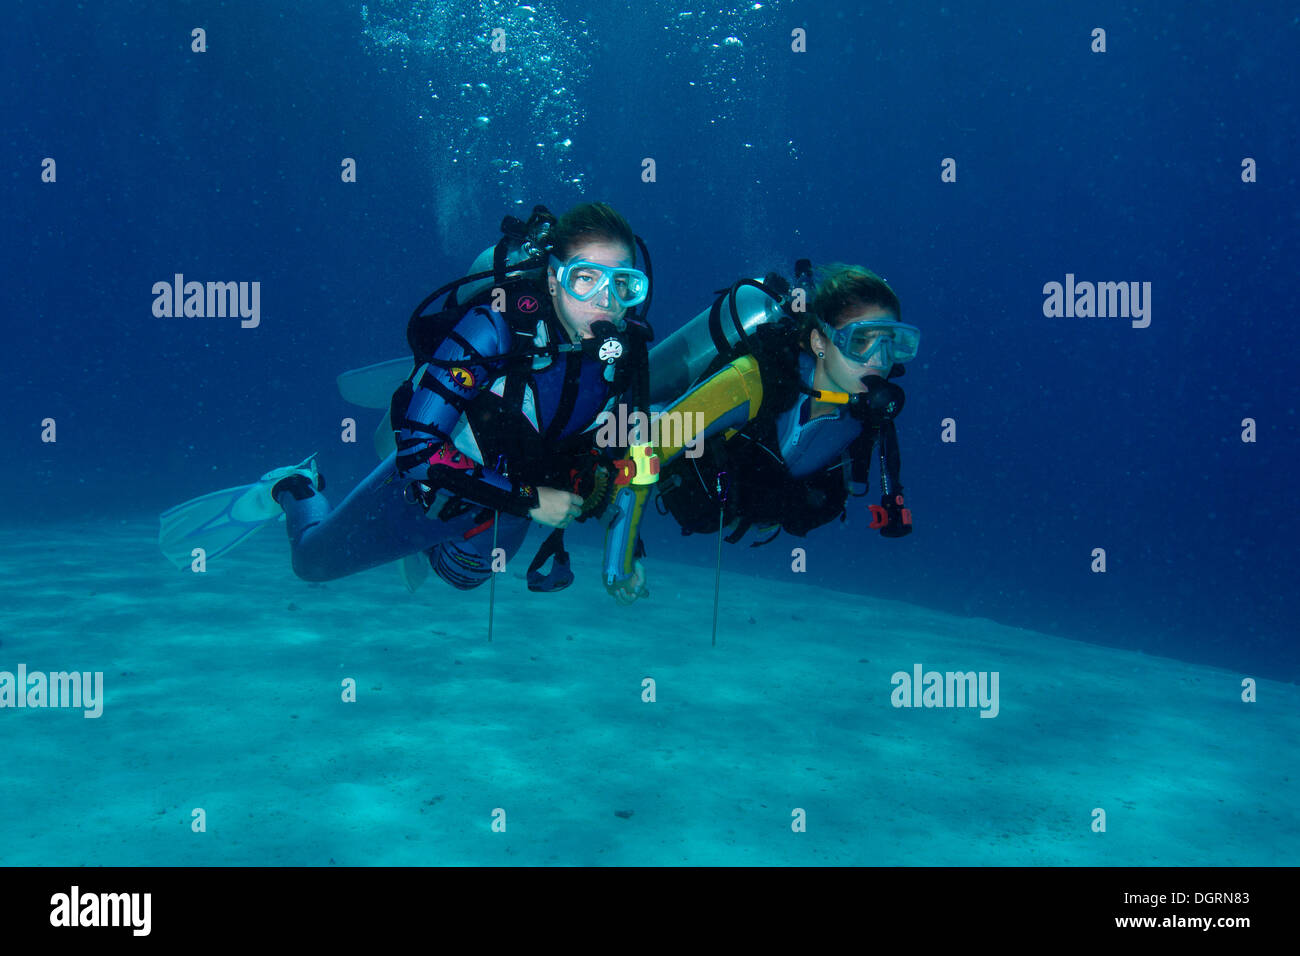 Two divers, South China Sea, Balnek, Busuanga Island, Calamian Islands, Palawan, Mimaropa, Philippines - Stock Image